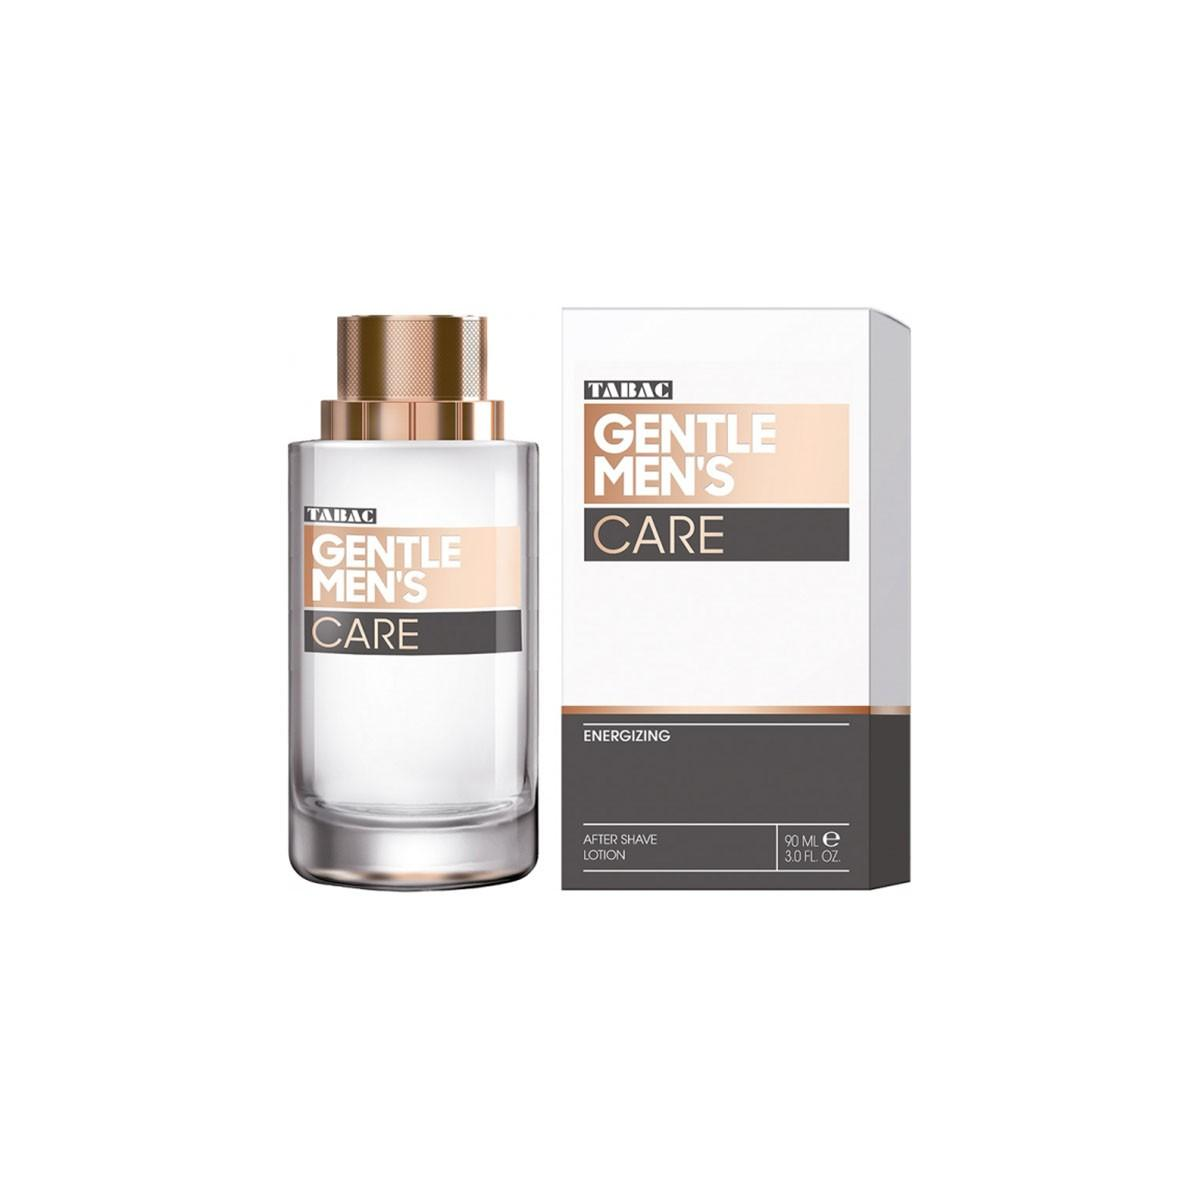 Tabac Gentlemen S Care Energizing After Shave Lotion 90 ml